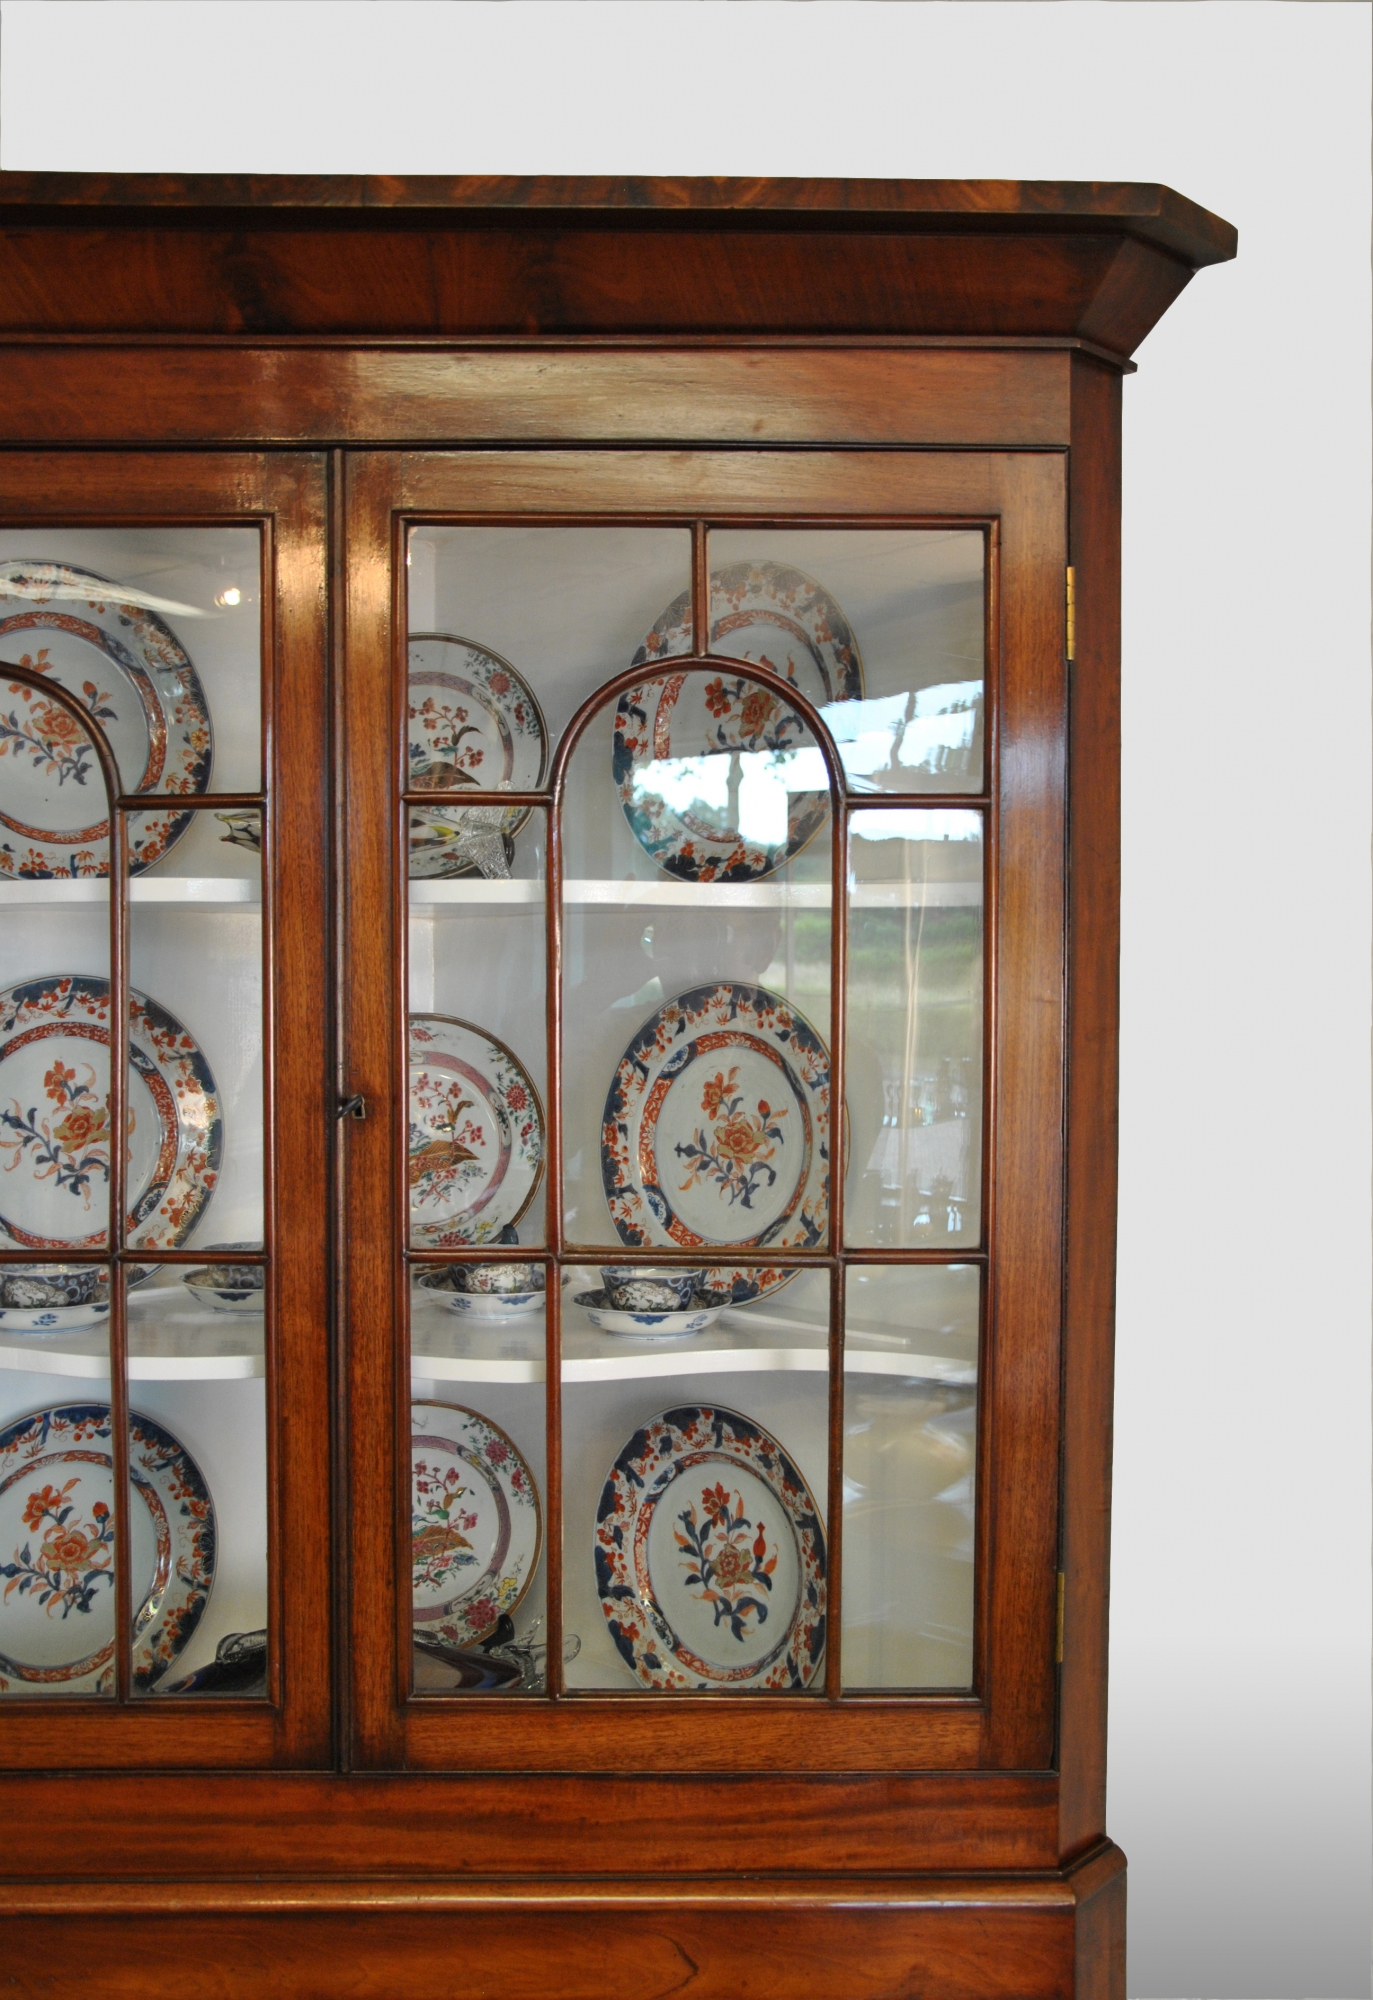 #71351A English Corner Display Cabinet With The Original Glass In  with 1373x2000 px of Recommended Mahogany Display Cabinets With Glass Doors 20001373 save image @ avoidforclosure.info